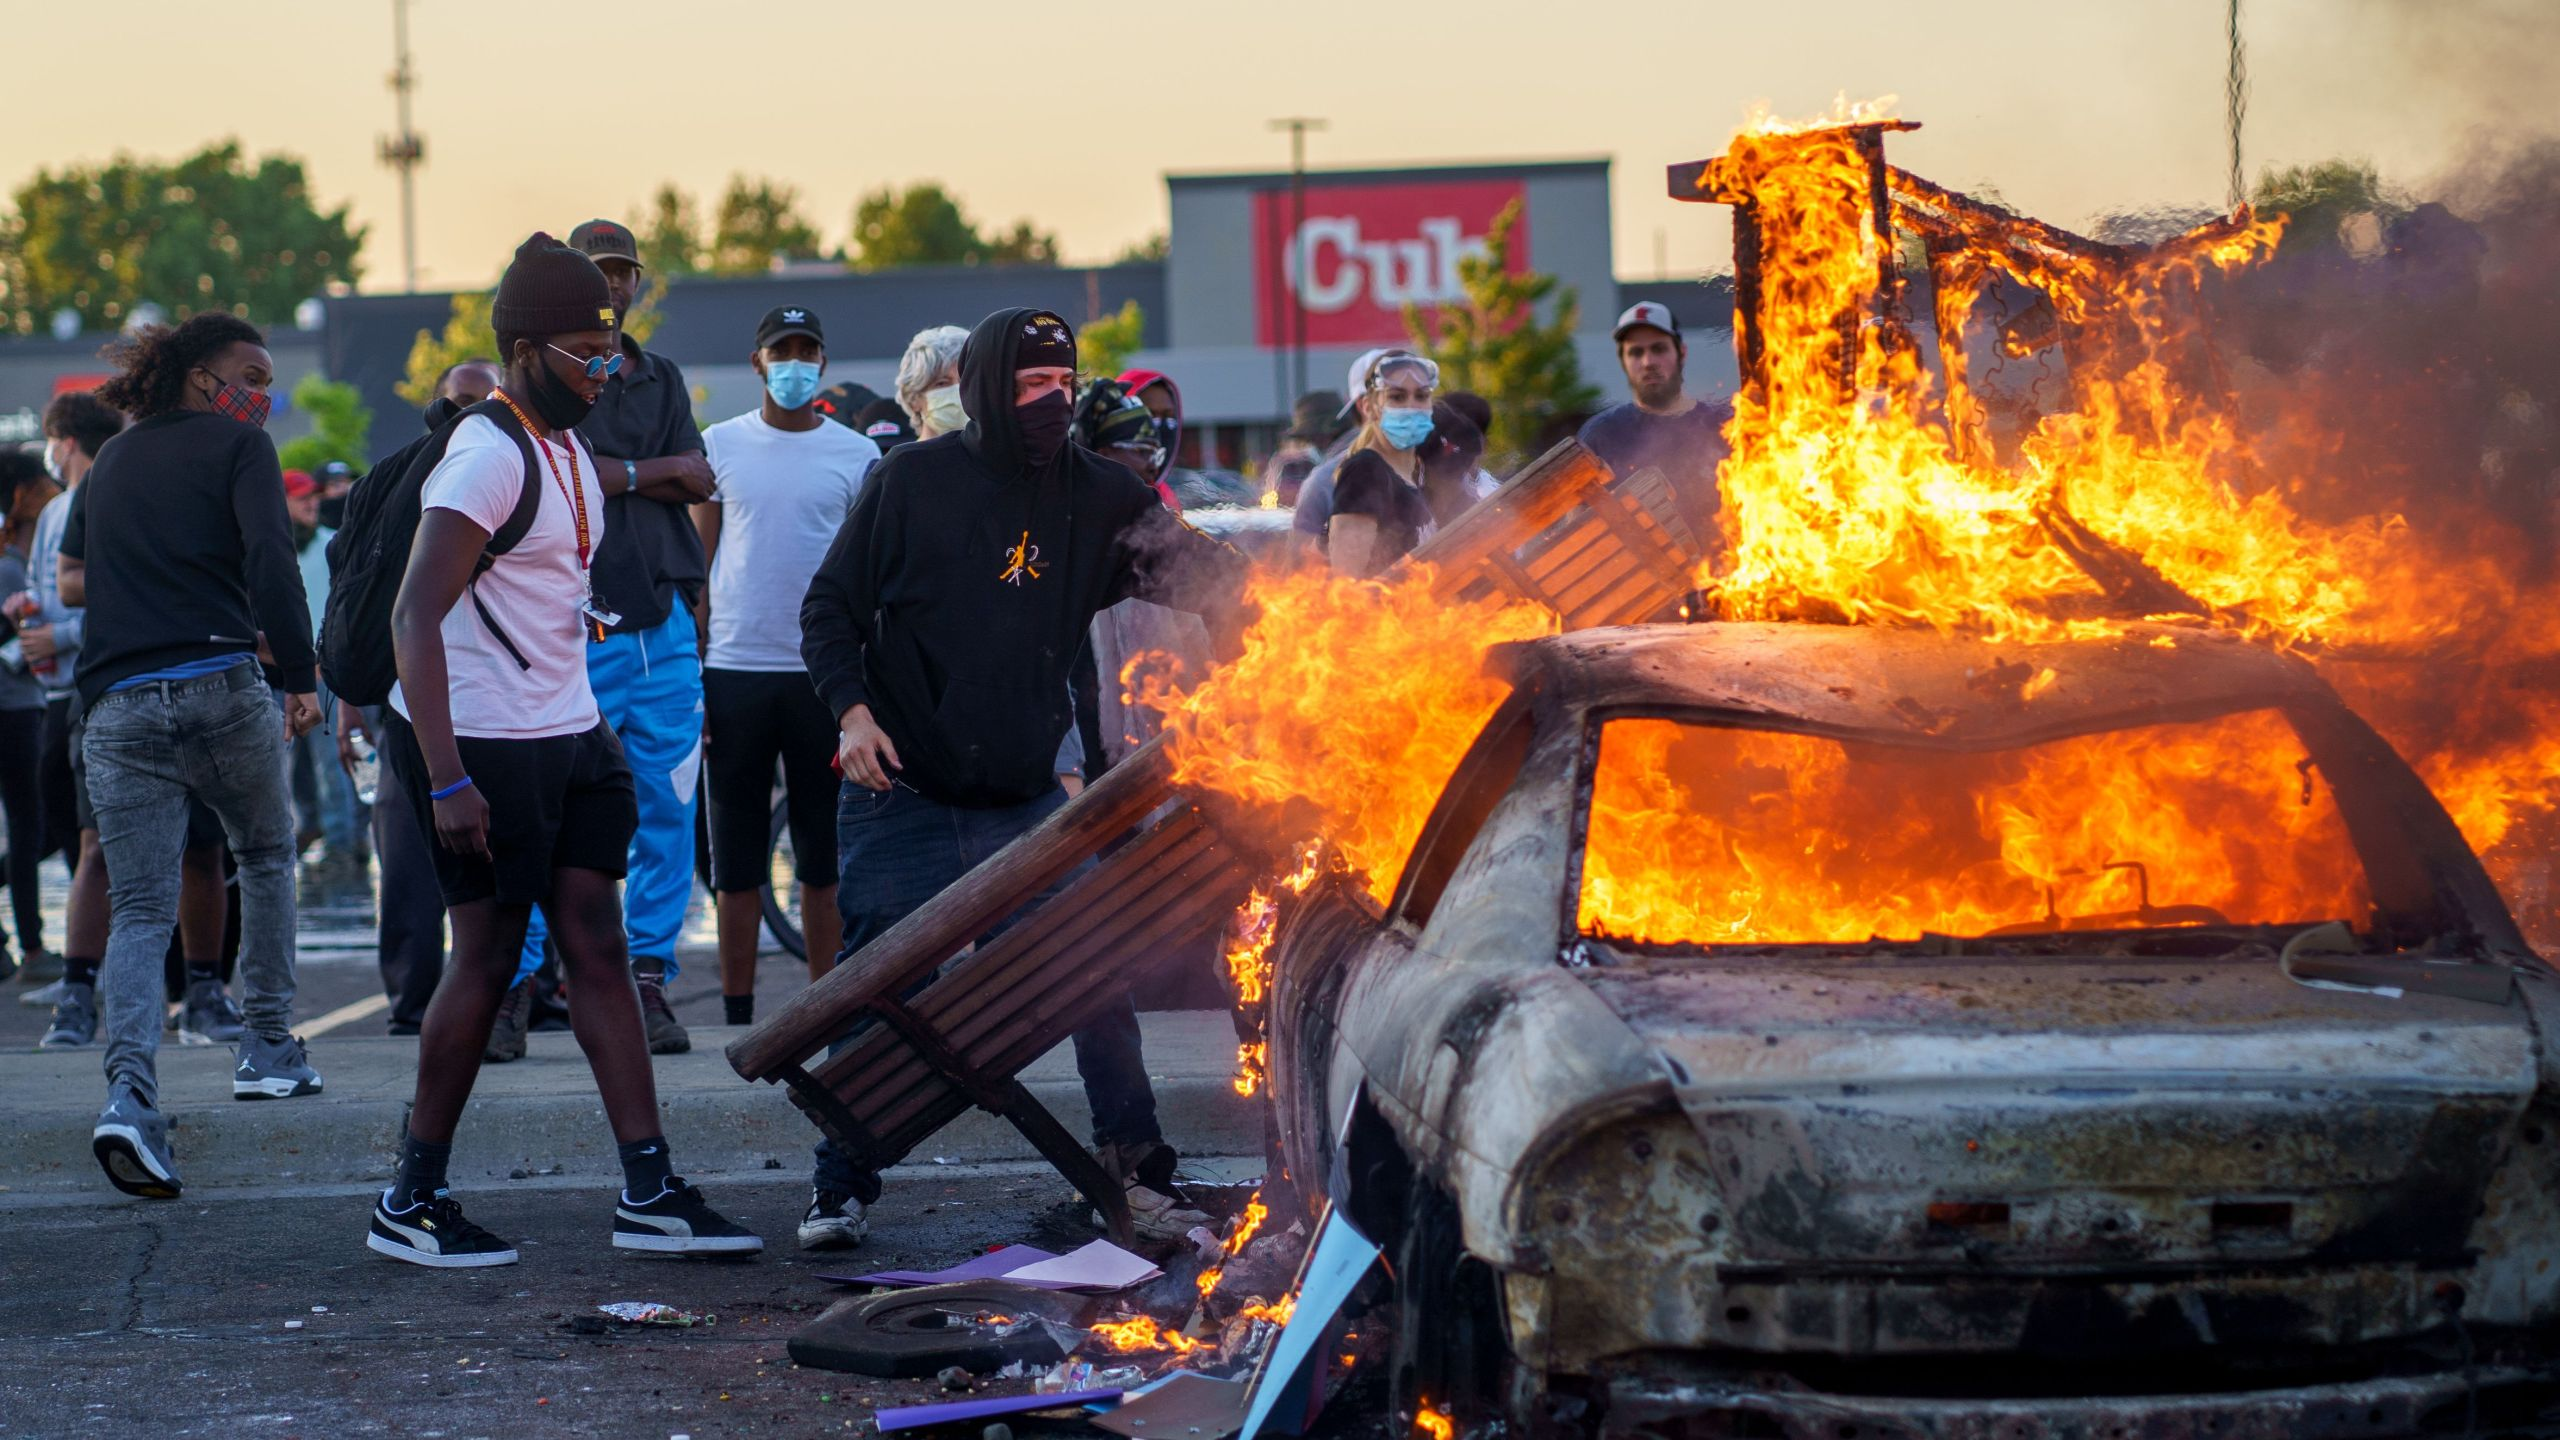 Protesters throw objects onto a burning car outside a Target store near the Third Police Precinct in Minneapolis, Minnesota, on May 28, 2020, during a demonstration over the death of George Floyd. (Kerem Yucel / AFP / Getty Images)